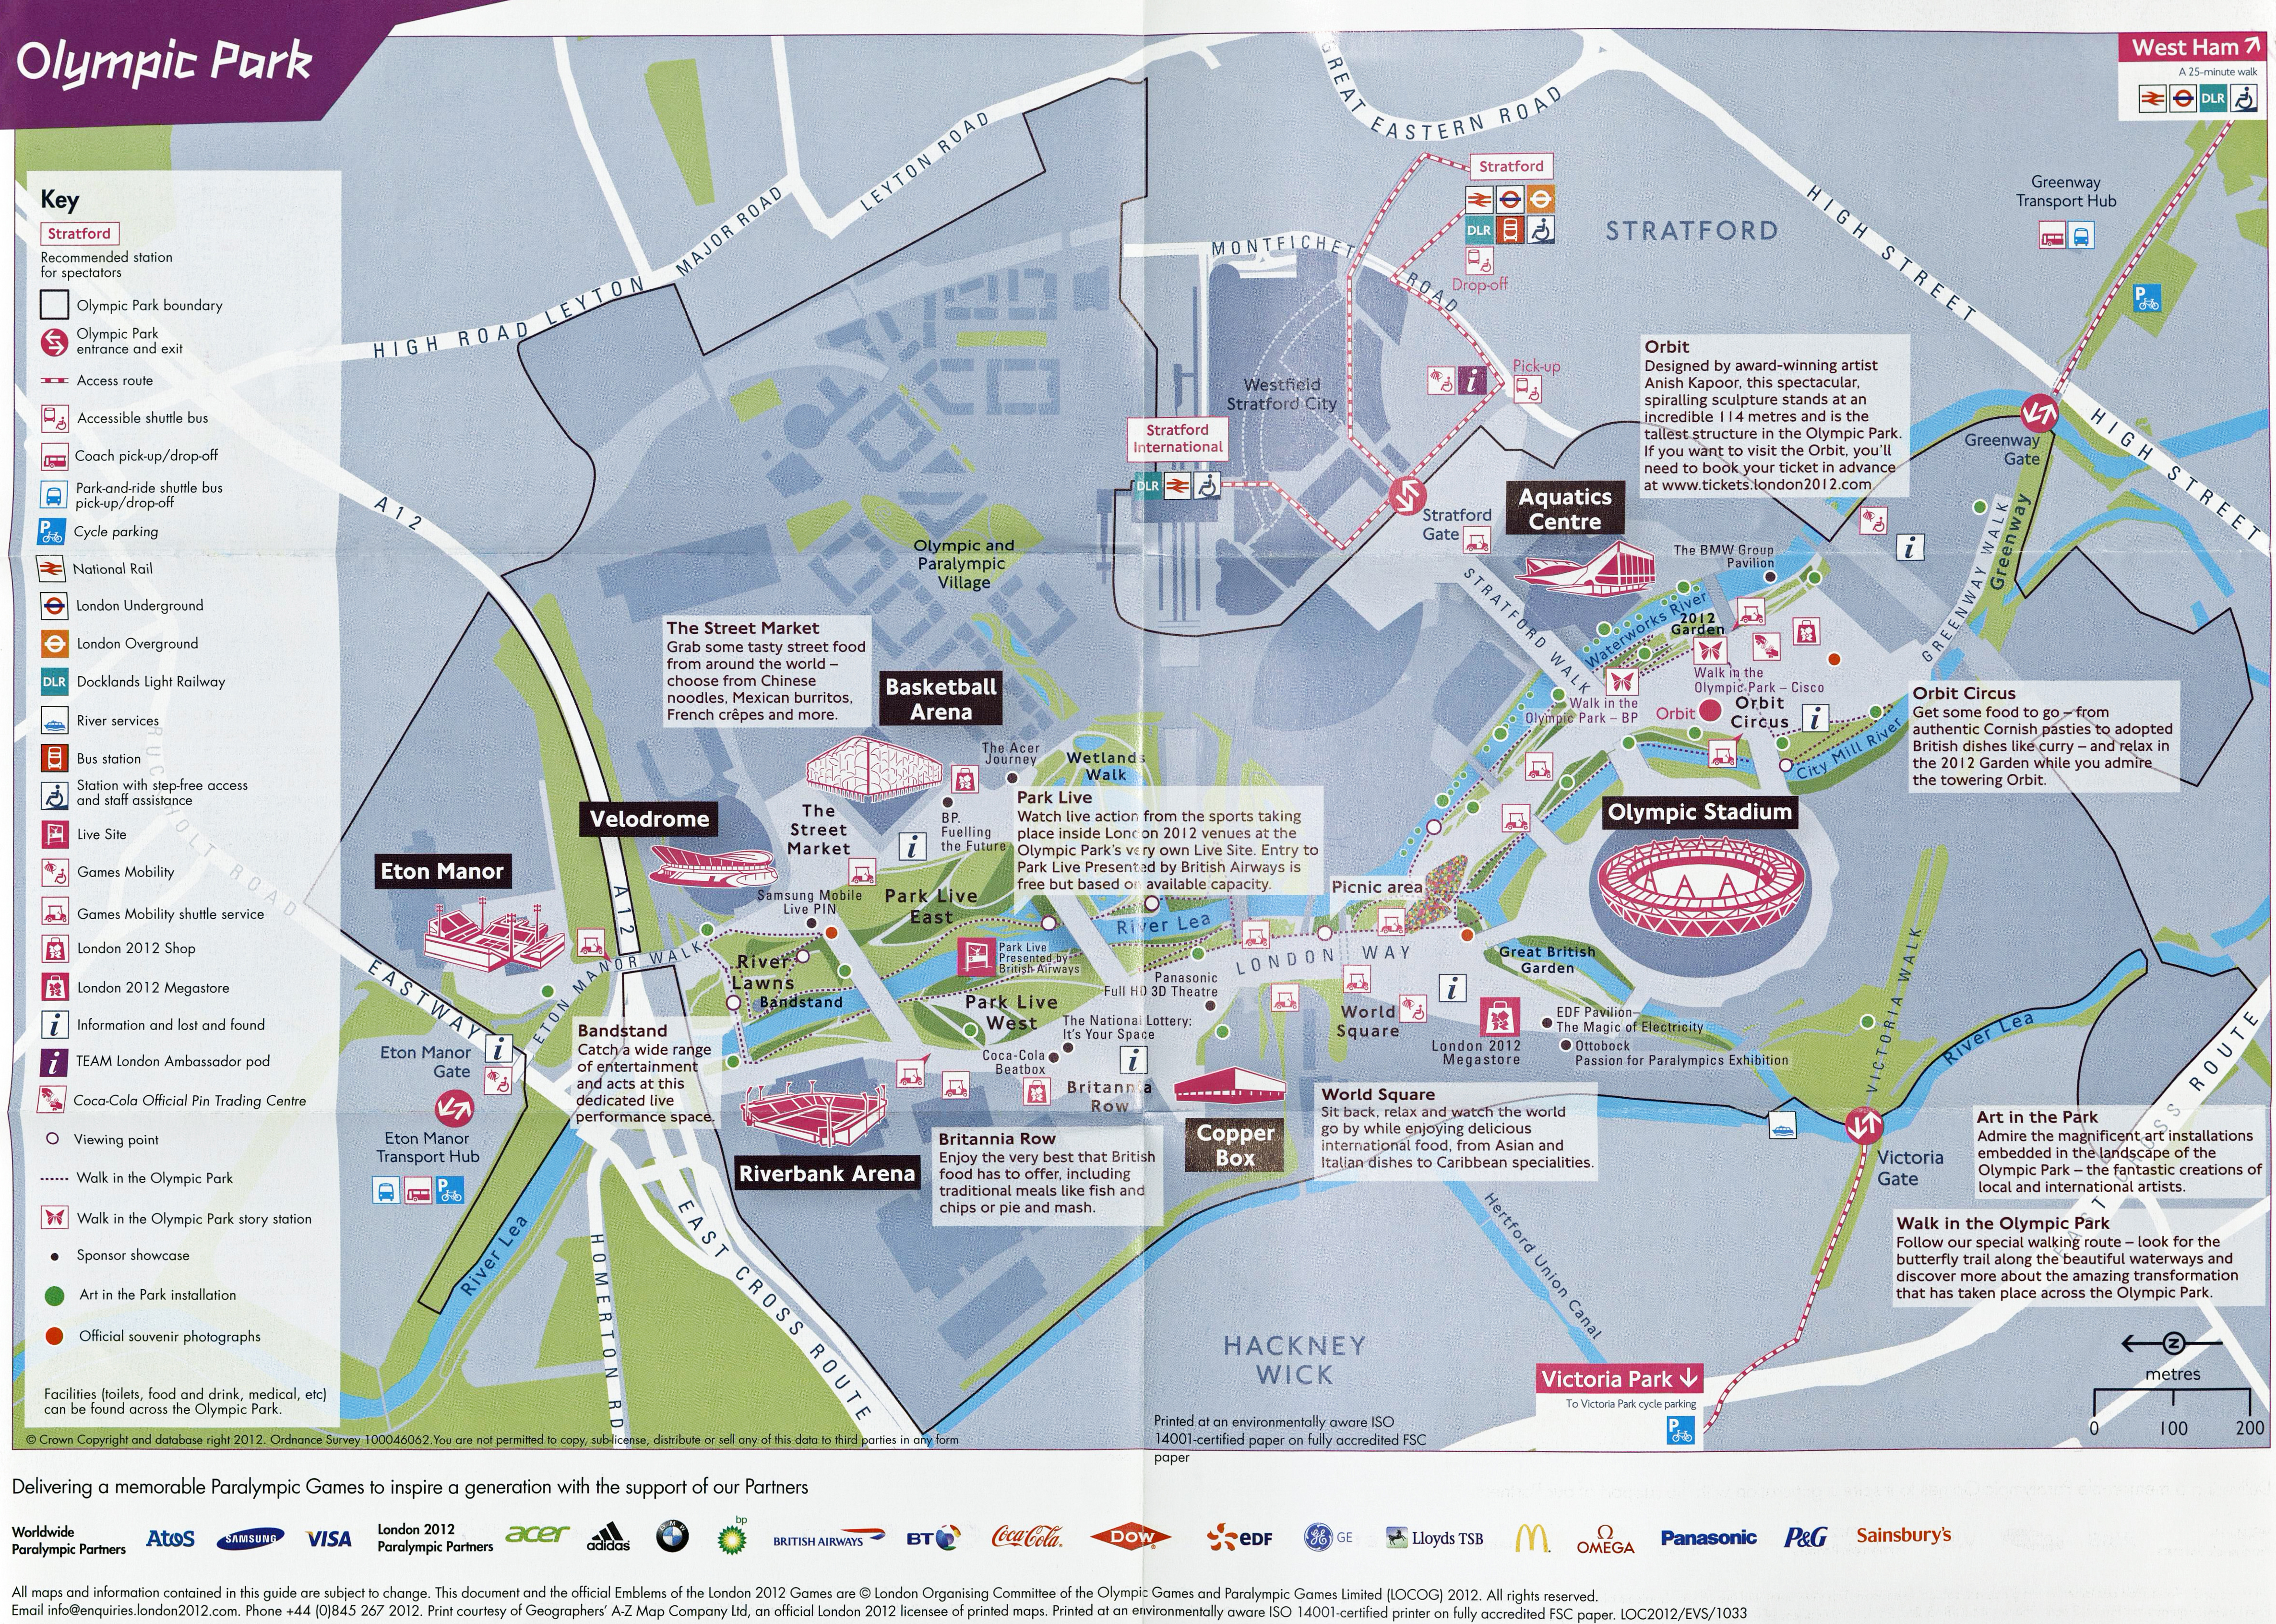 Based on Ordnance Survey mapping but including very simple detail. There is sufficient information on this map to enable those unfamiliar with maps to navigate around the 2012 Olympic Park